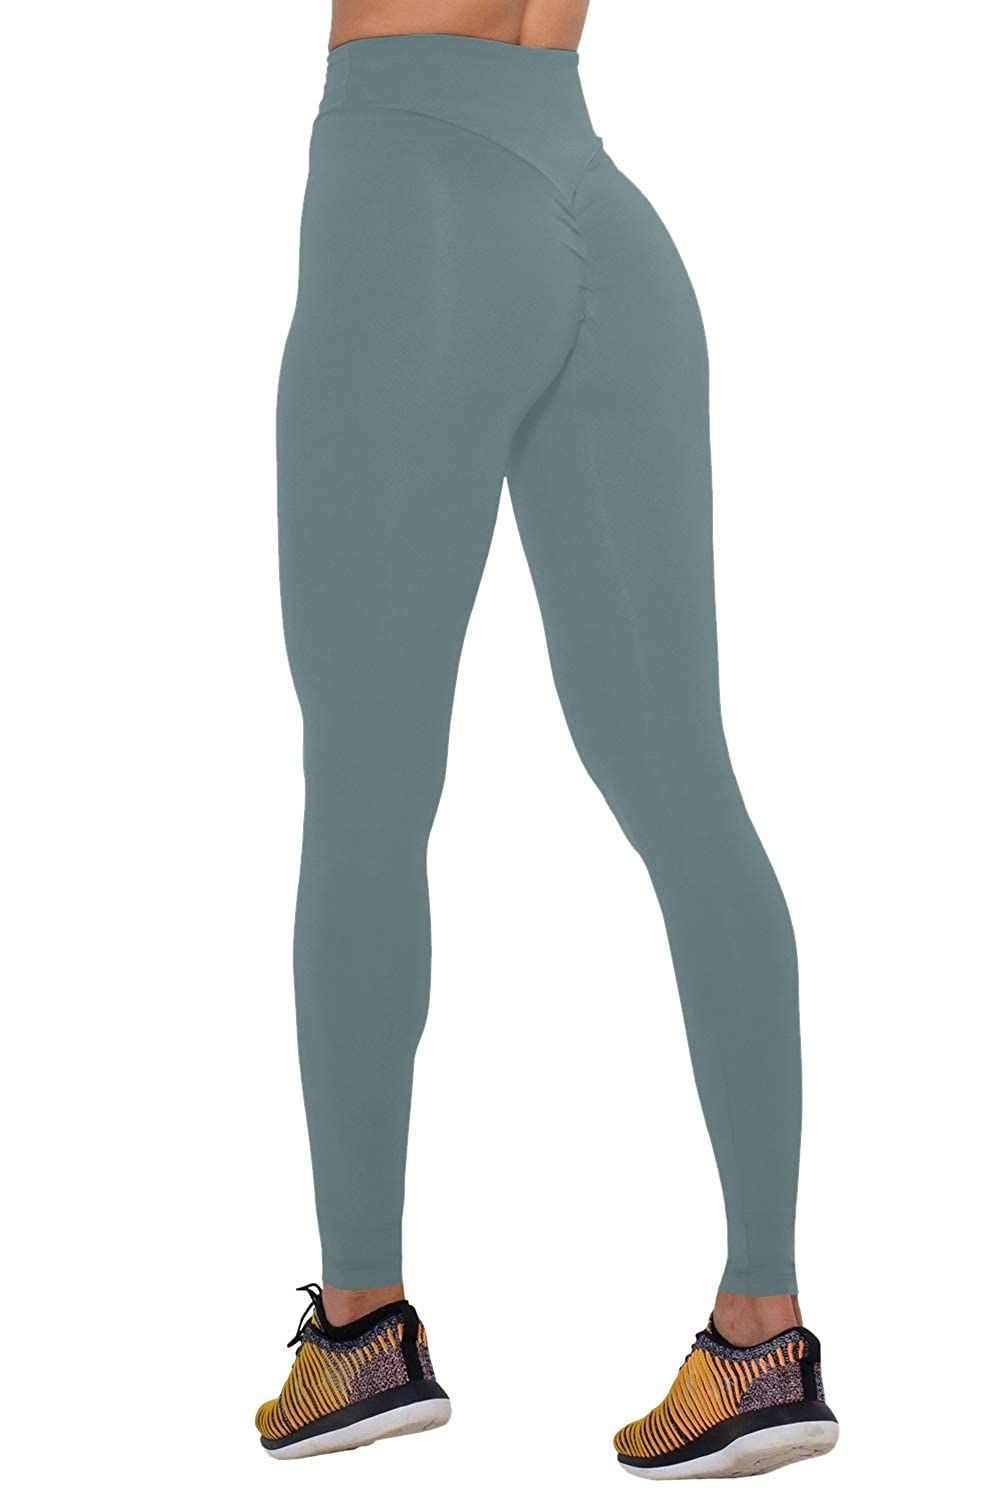 Light bluee COCOLEGGINGS Womens High Waist Scrunch Booty Lift Brazilian Workout Leggings